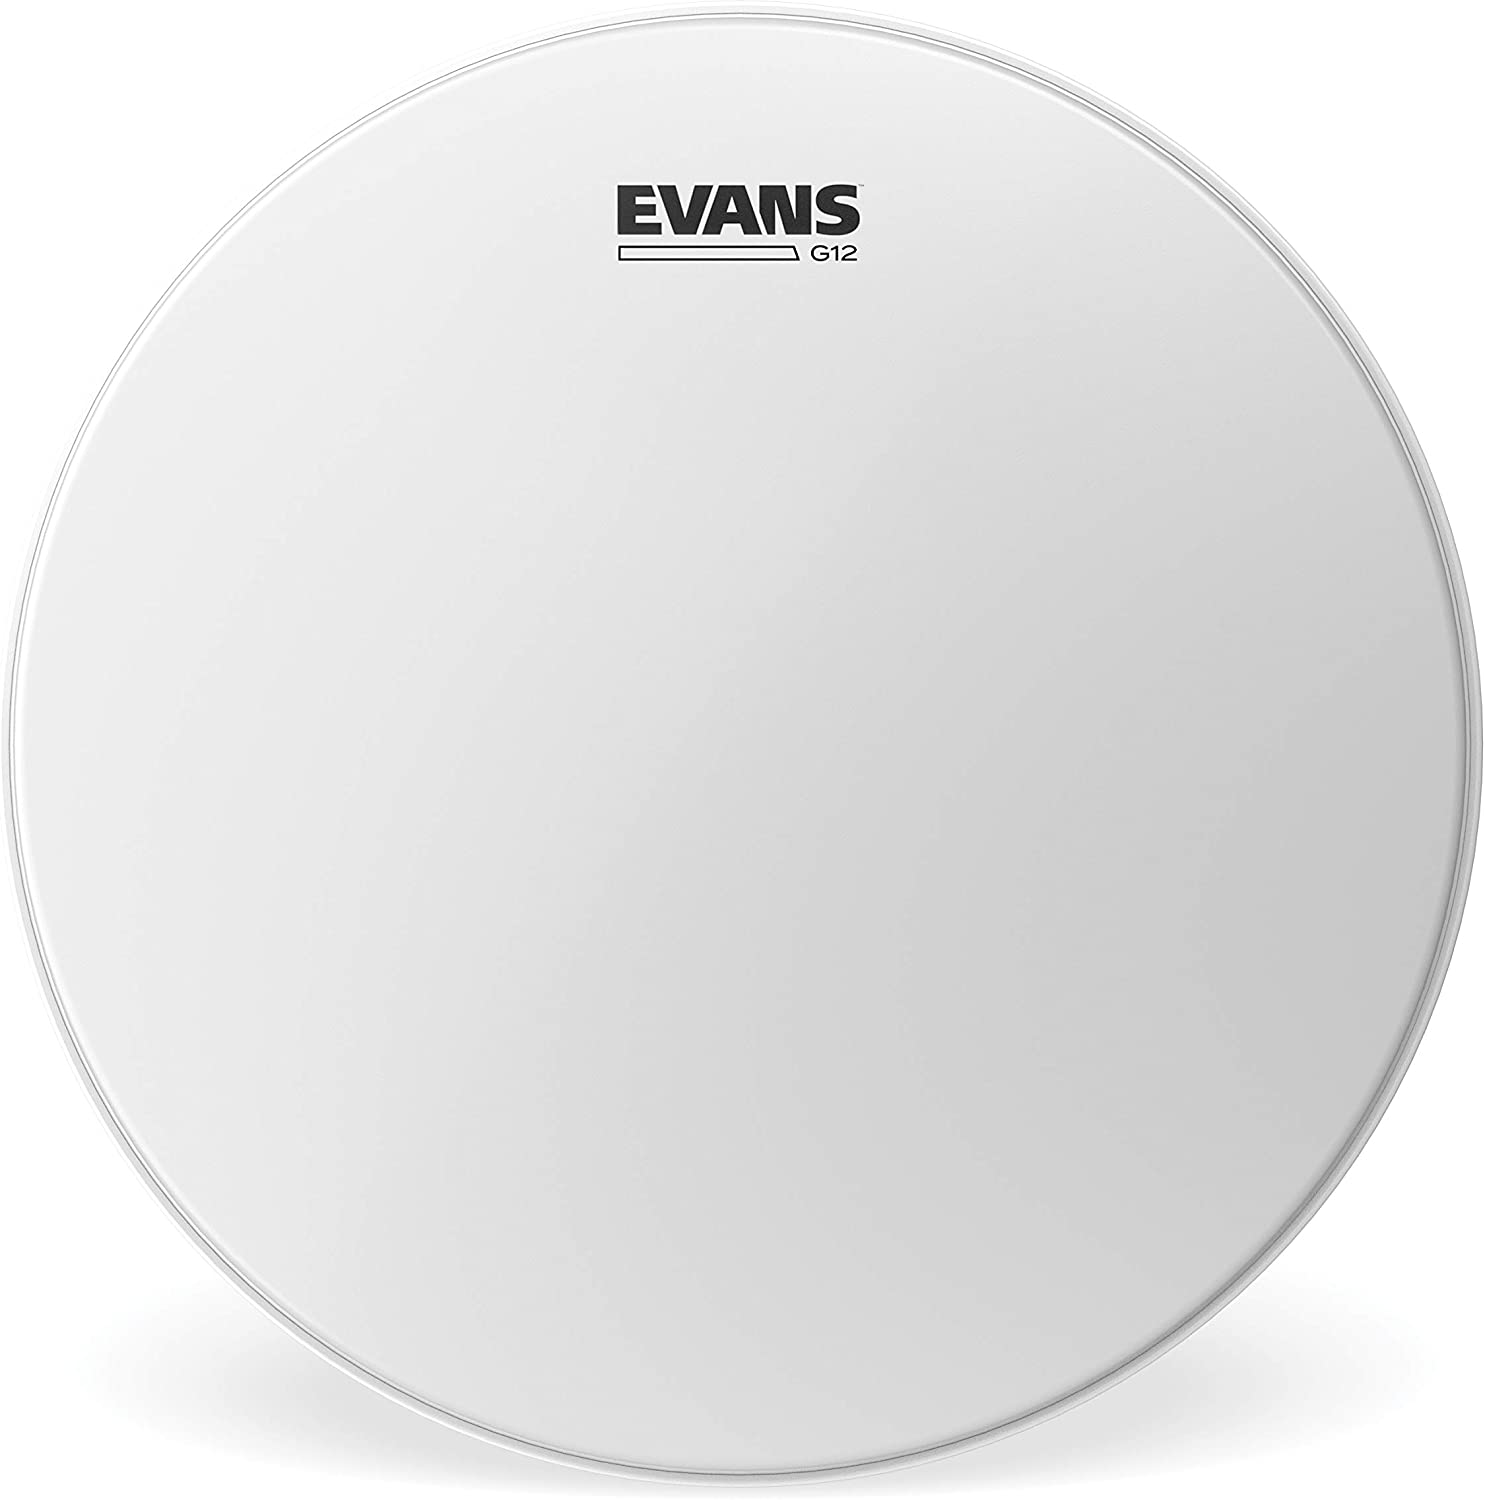 Evans half G12 New Free Shipping Coated White Drum Inch Head 18